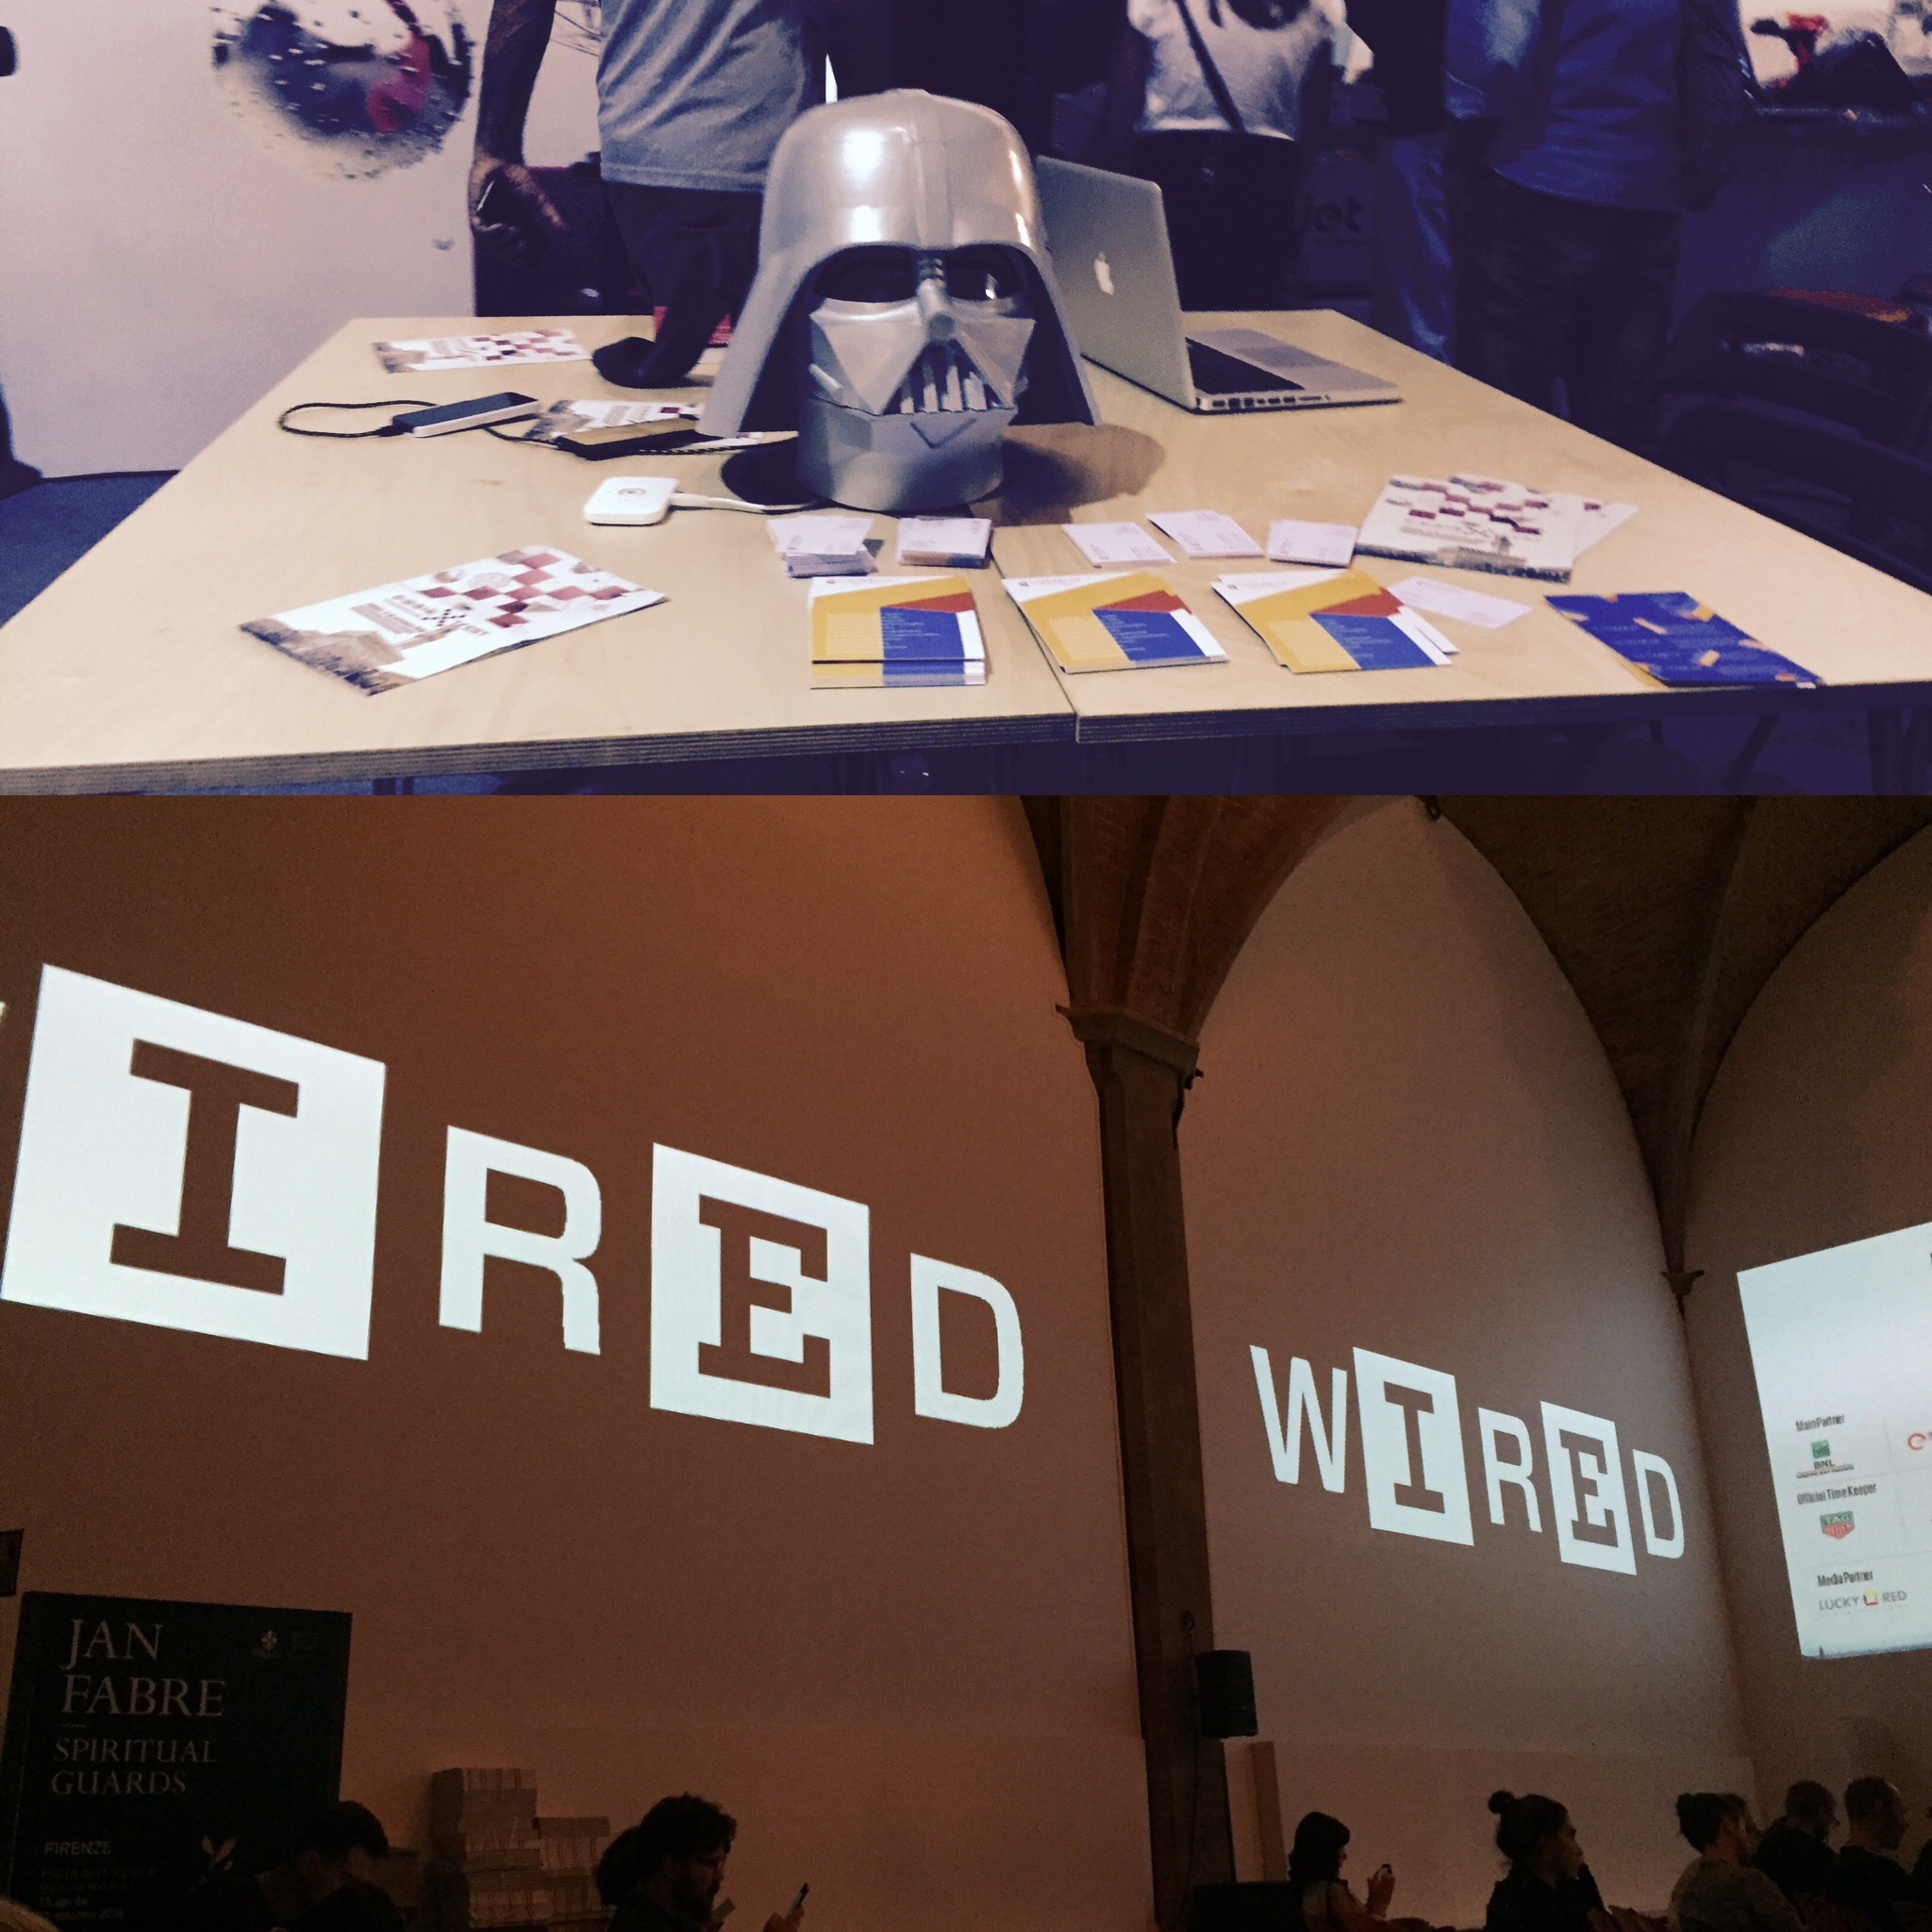 Weird-Wired Next Fest in Florence